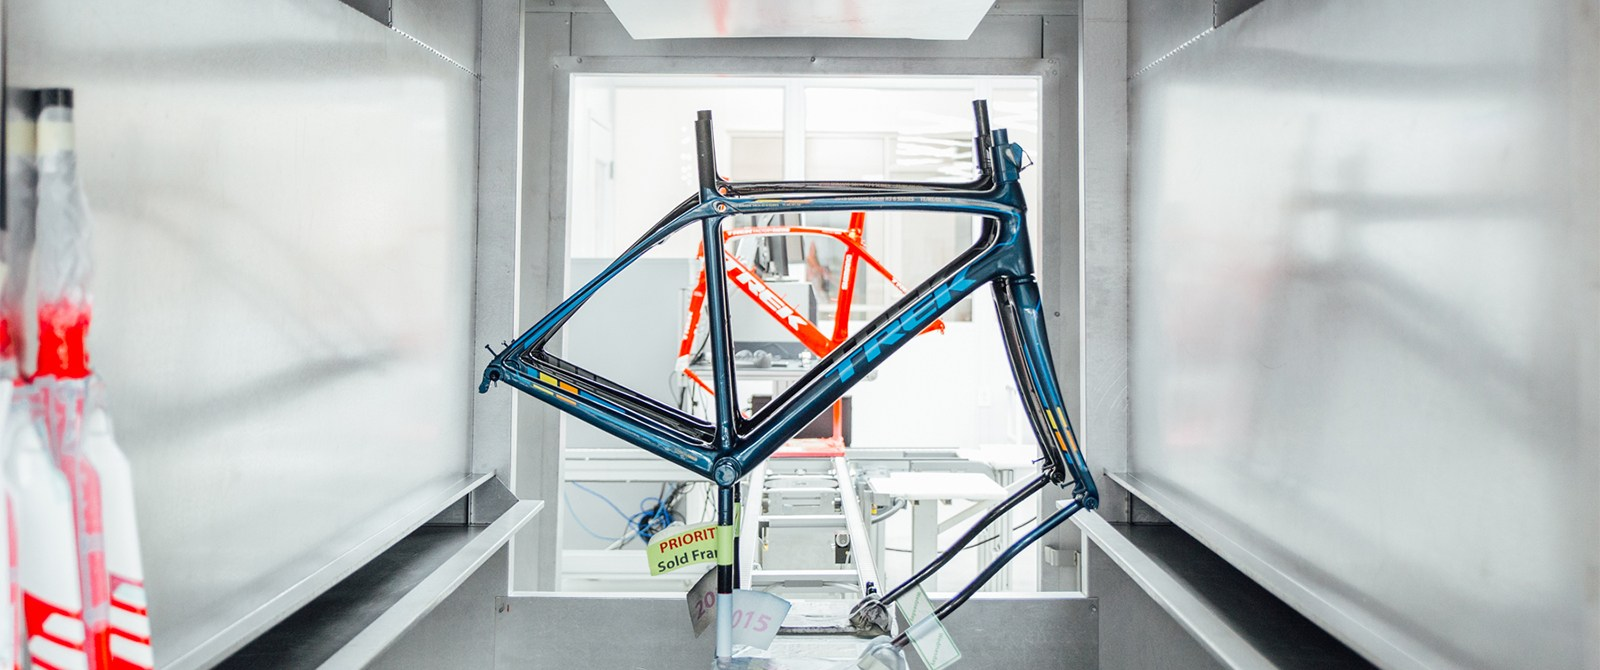 N + Project One   Trek Factory Experience